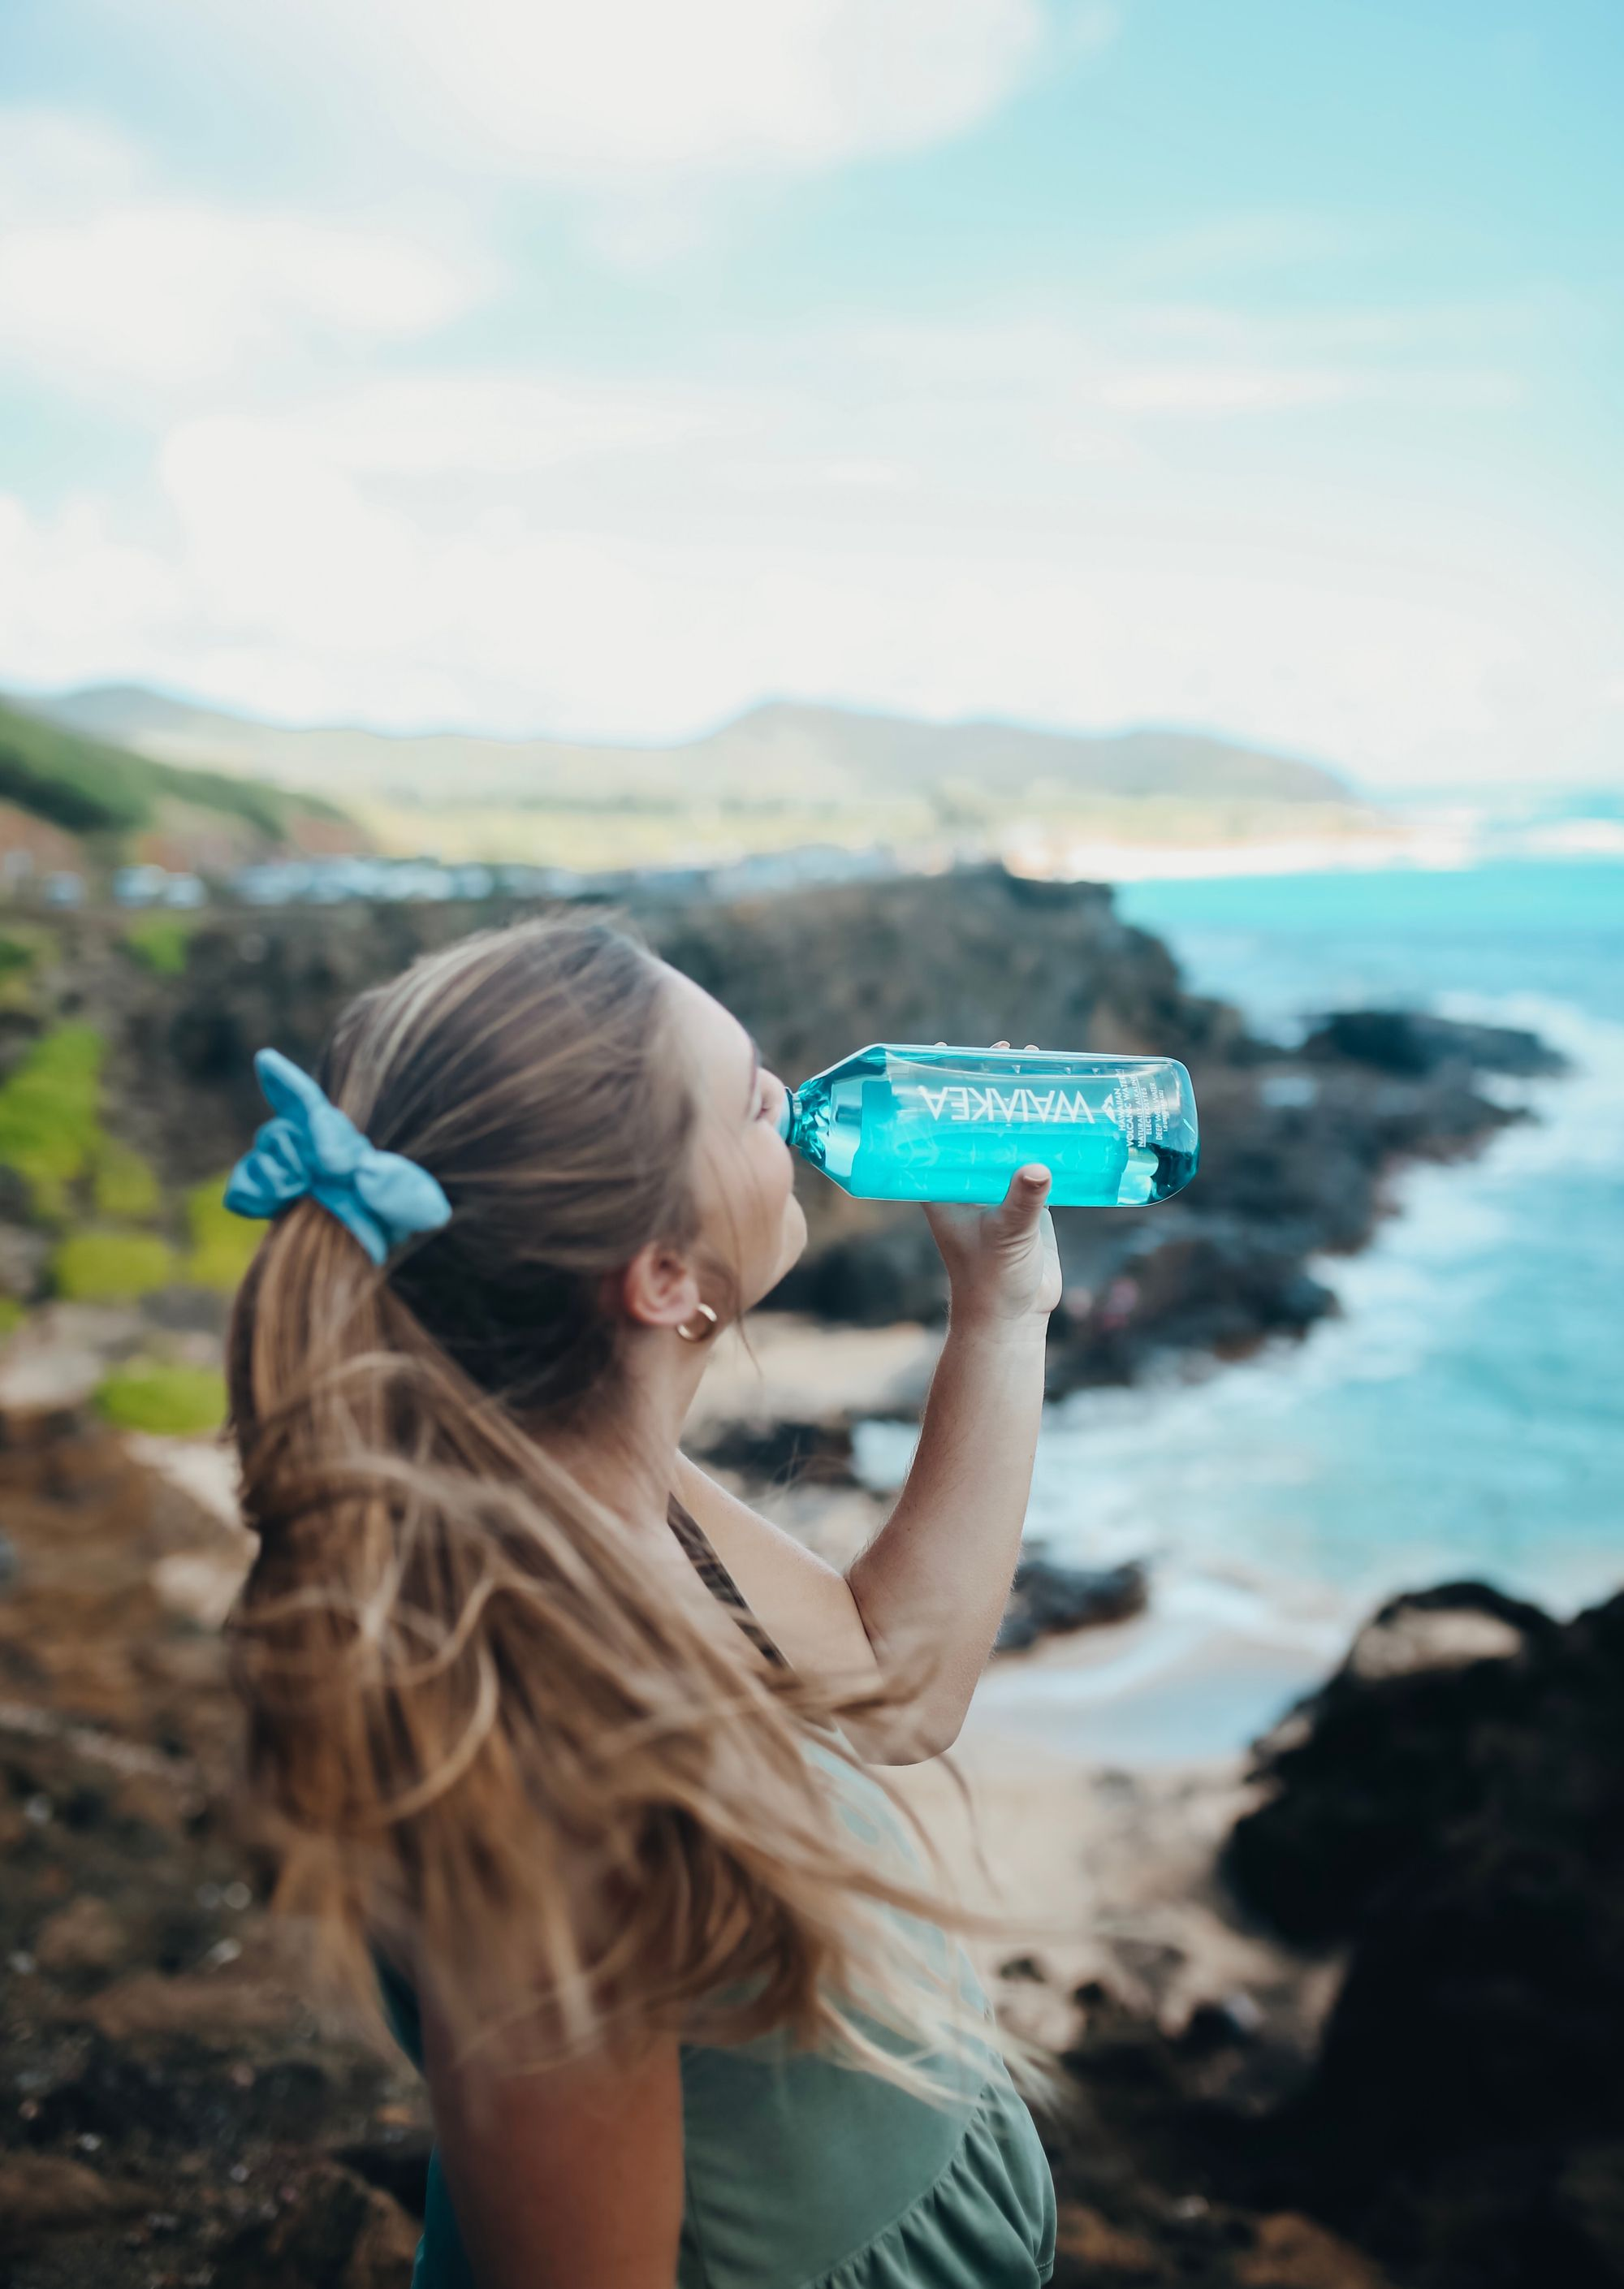 ONE FOR ONE. With each liter of Waiakea you buy, we donate